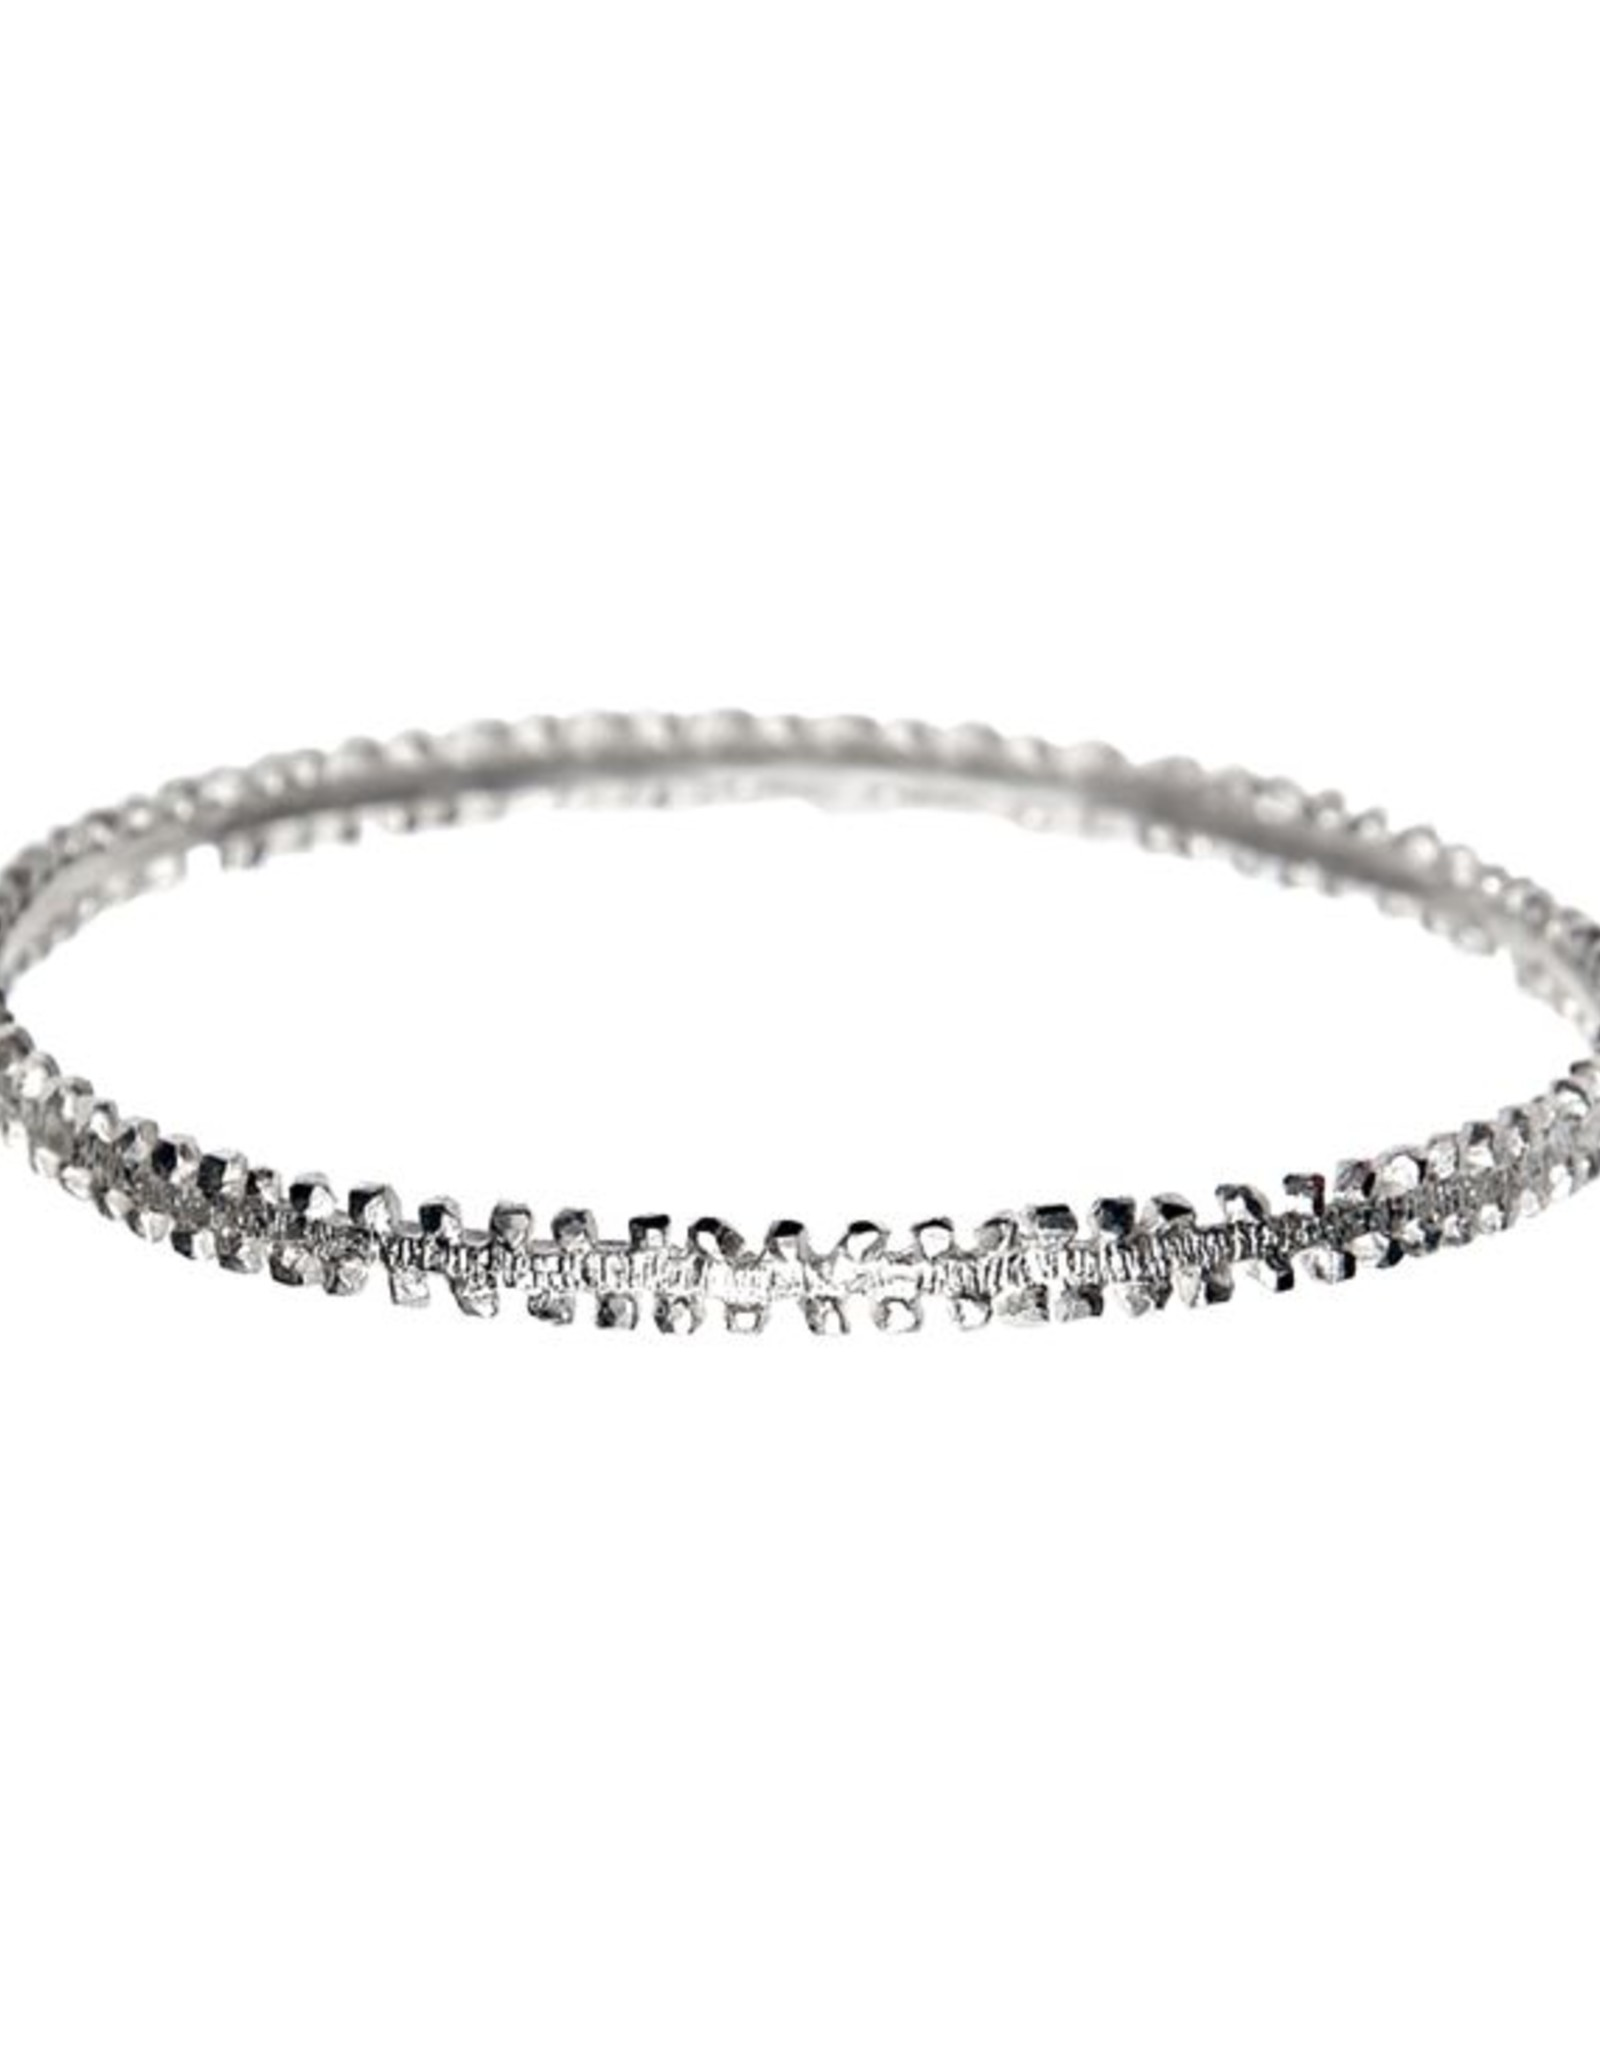 Himatsingka Victoria Silver Bangle